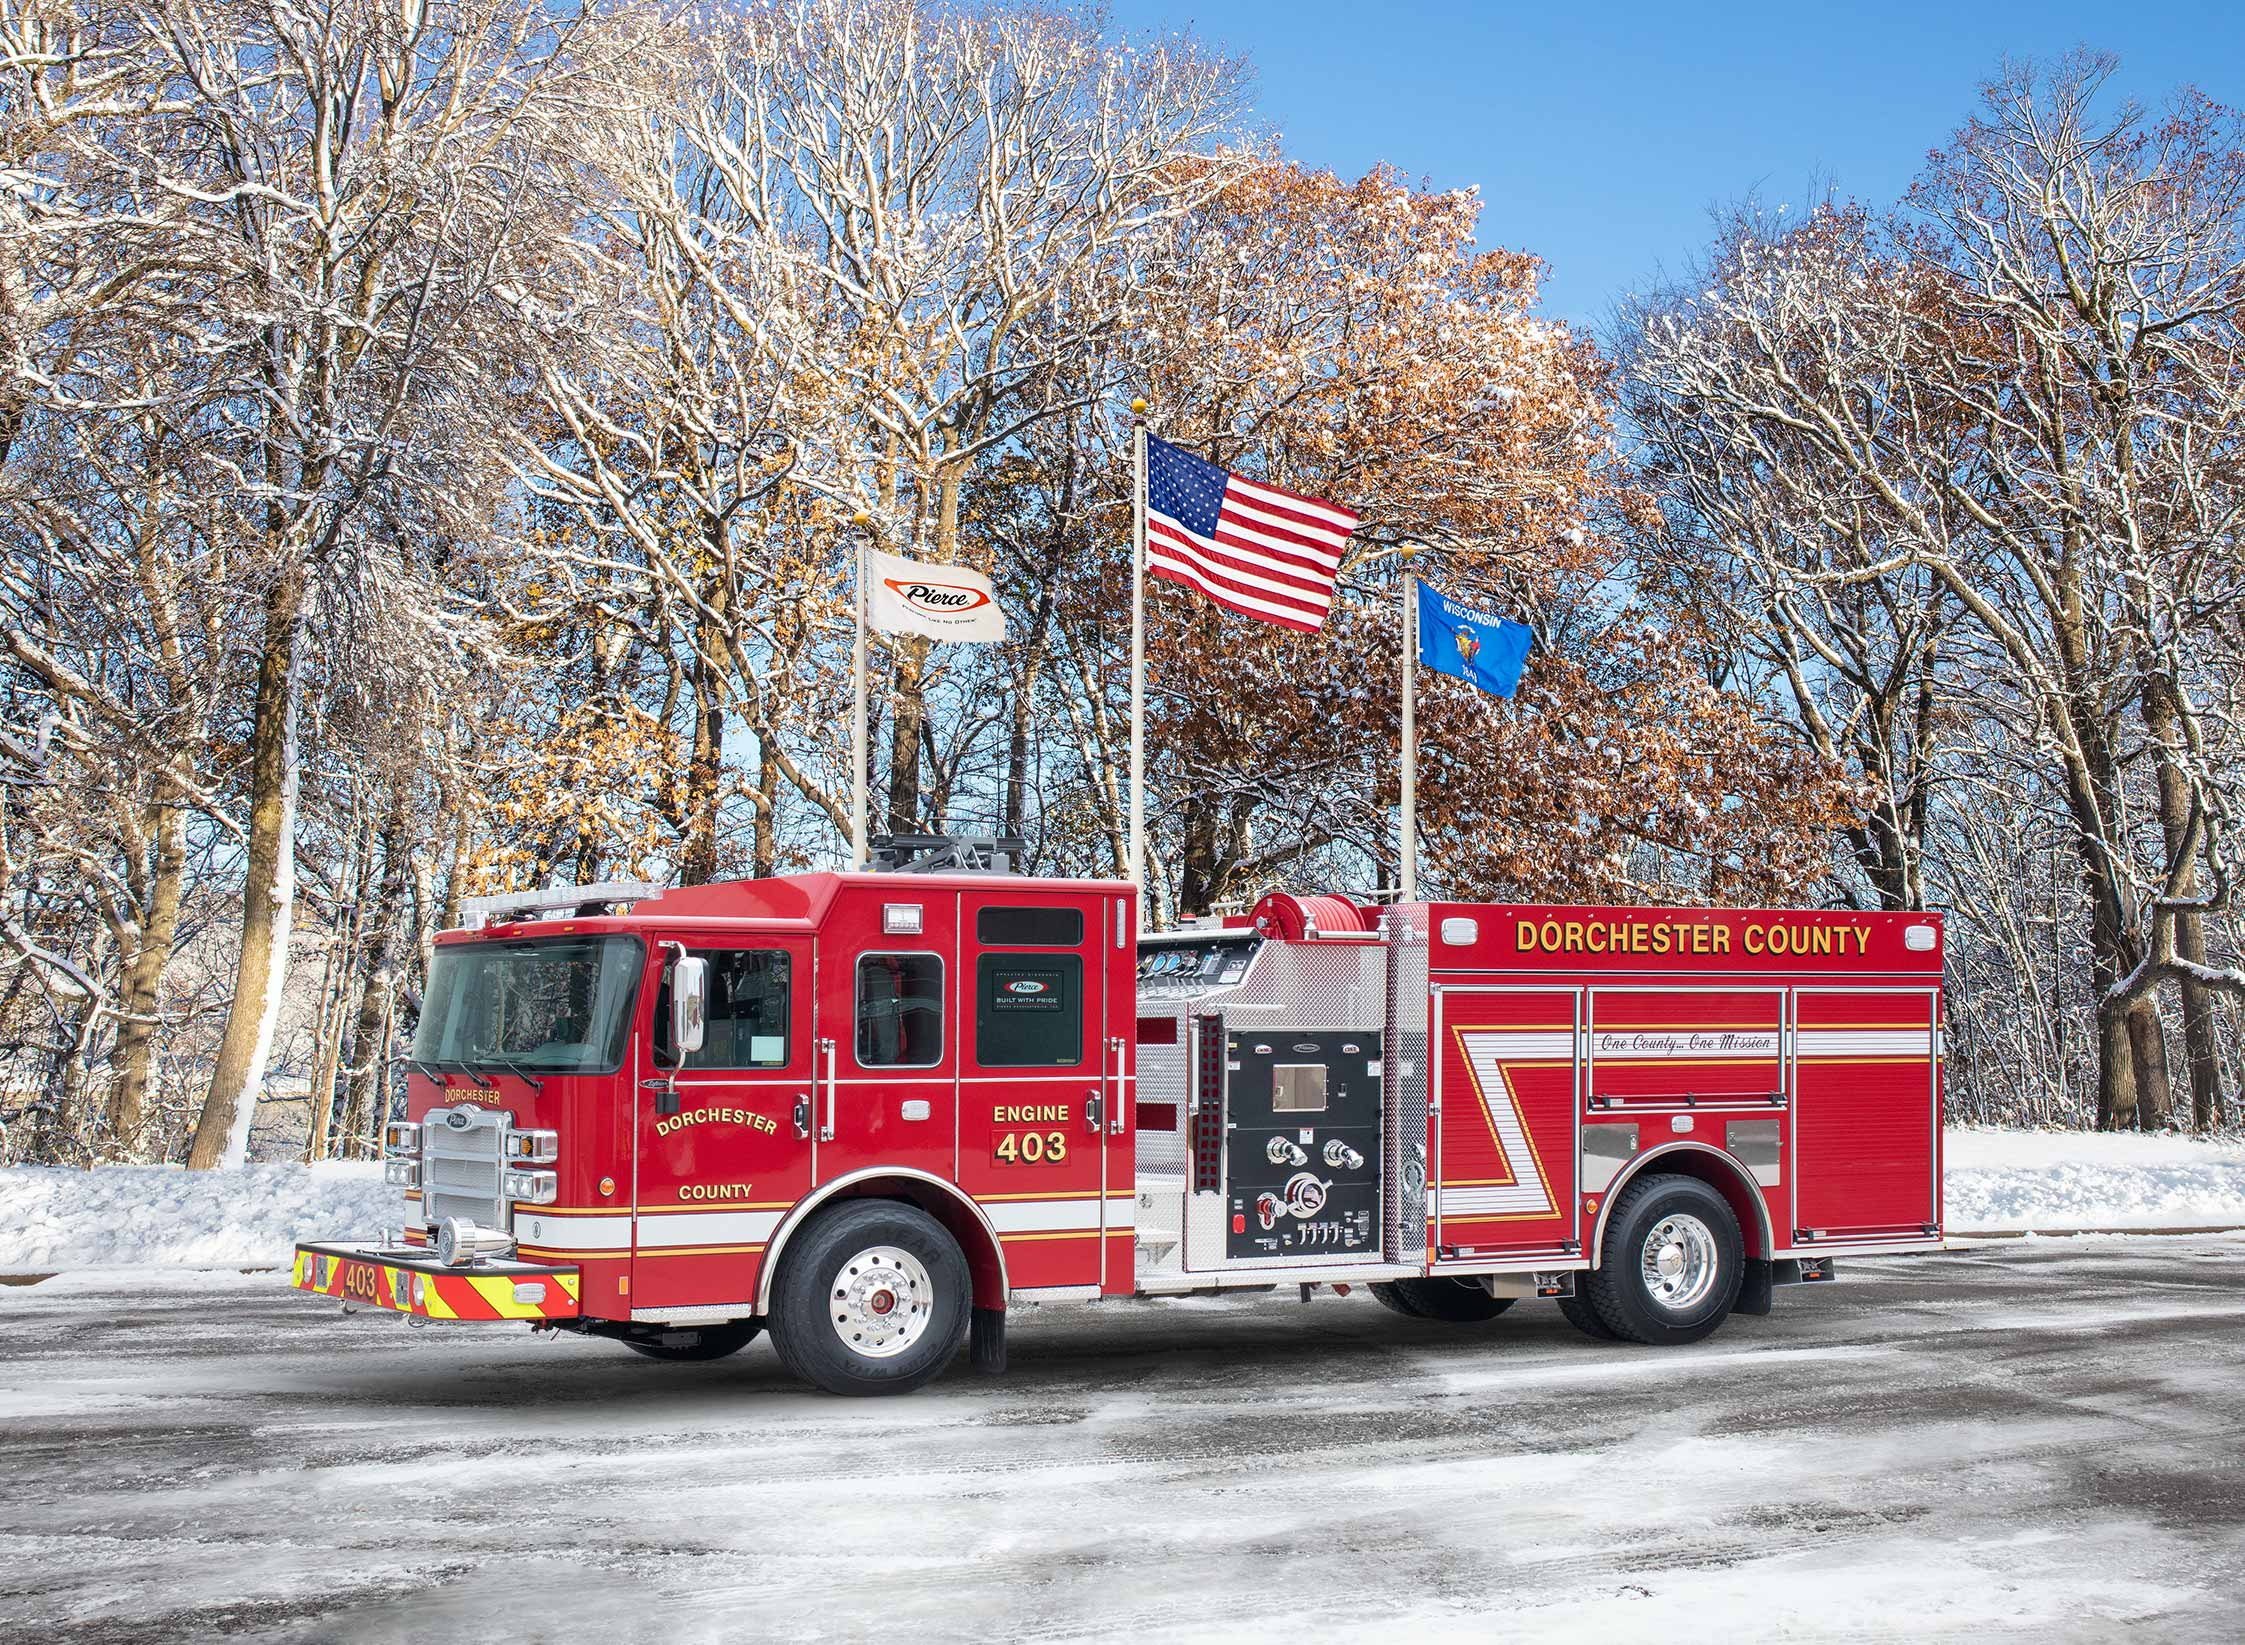 Dorchester County Fire Service - Pumper